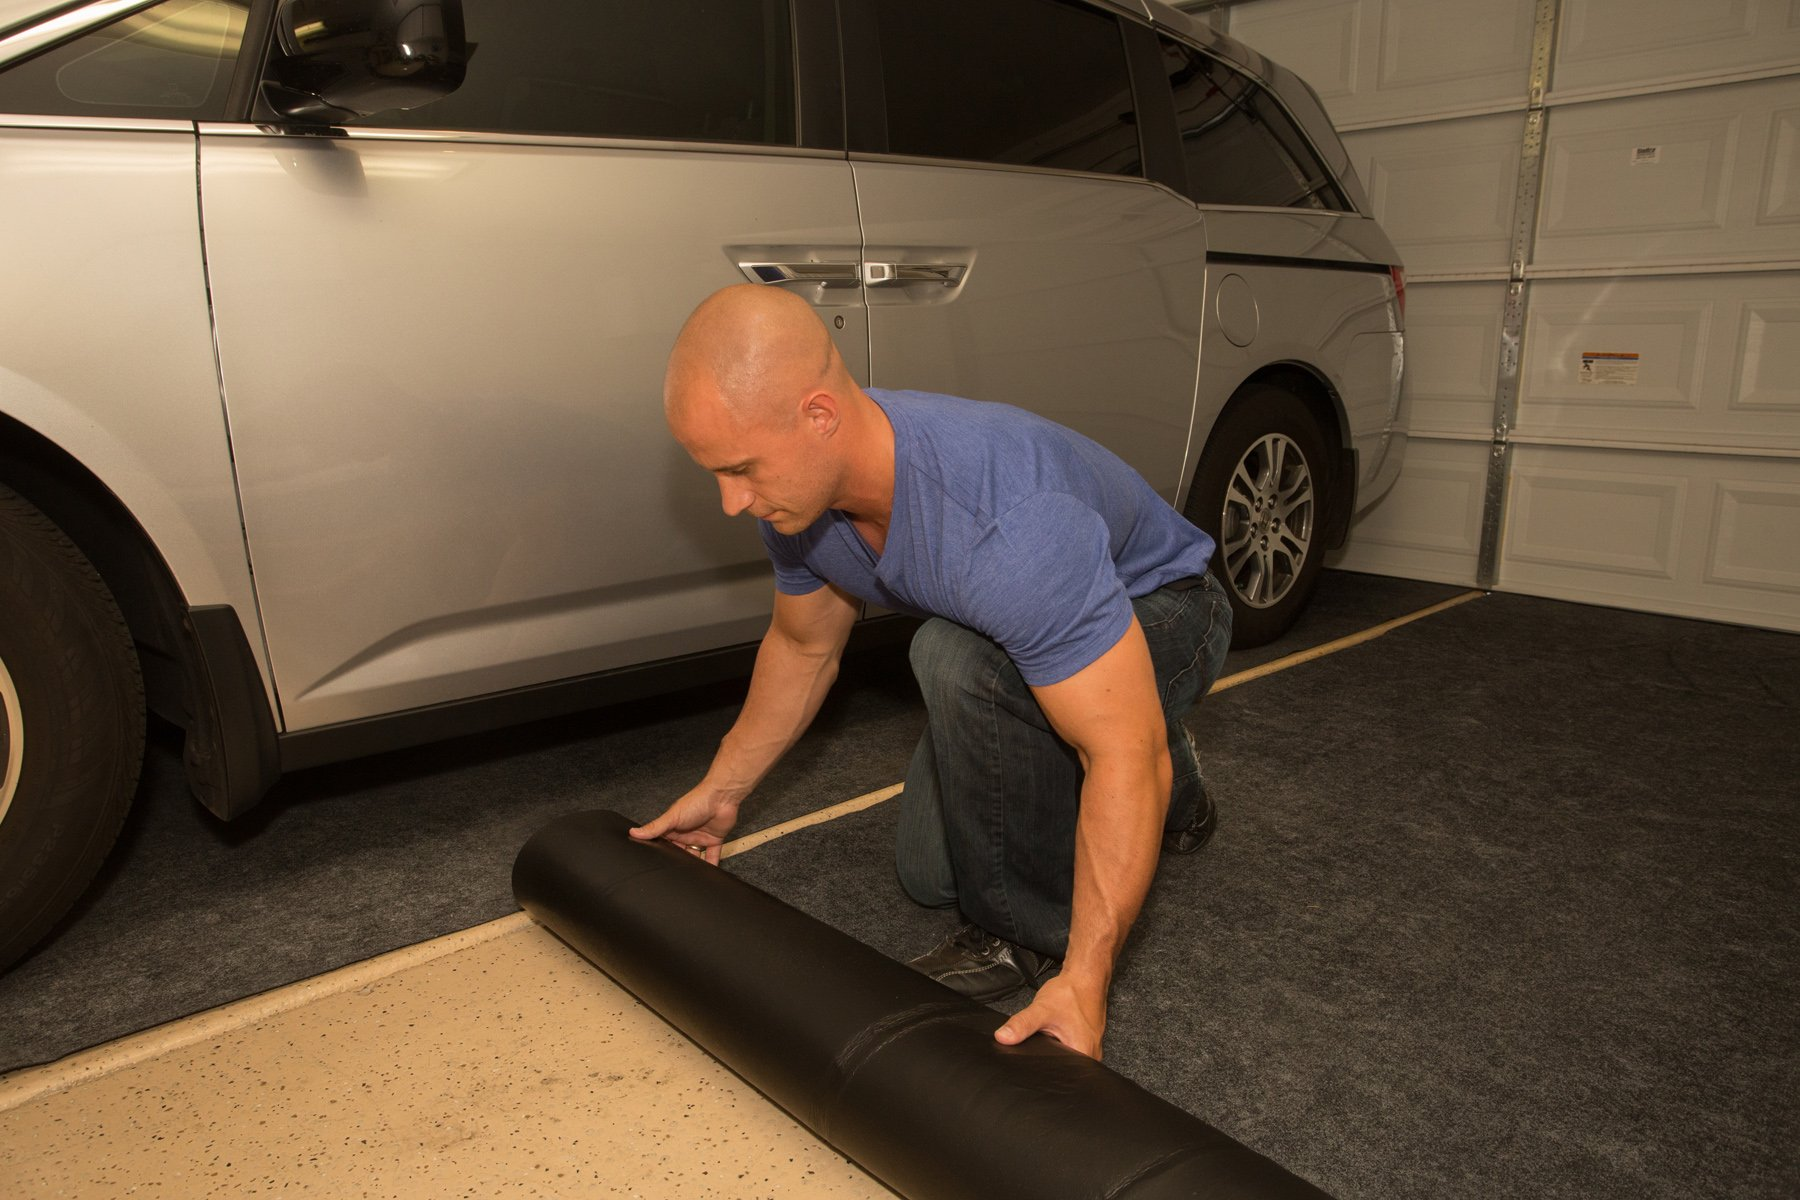 Armor All AAGFMC17 Charcoal 17' x 7'4'' Garage Floor Mat by Armor All (Image #3)